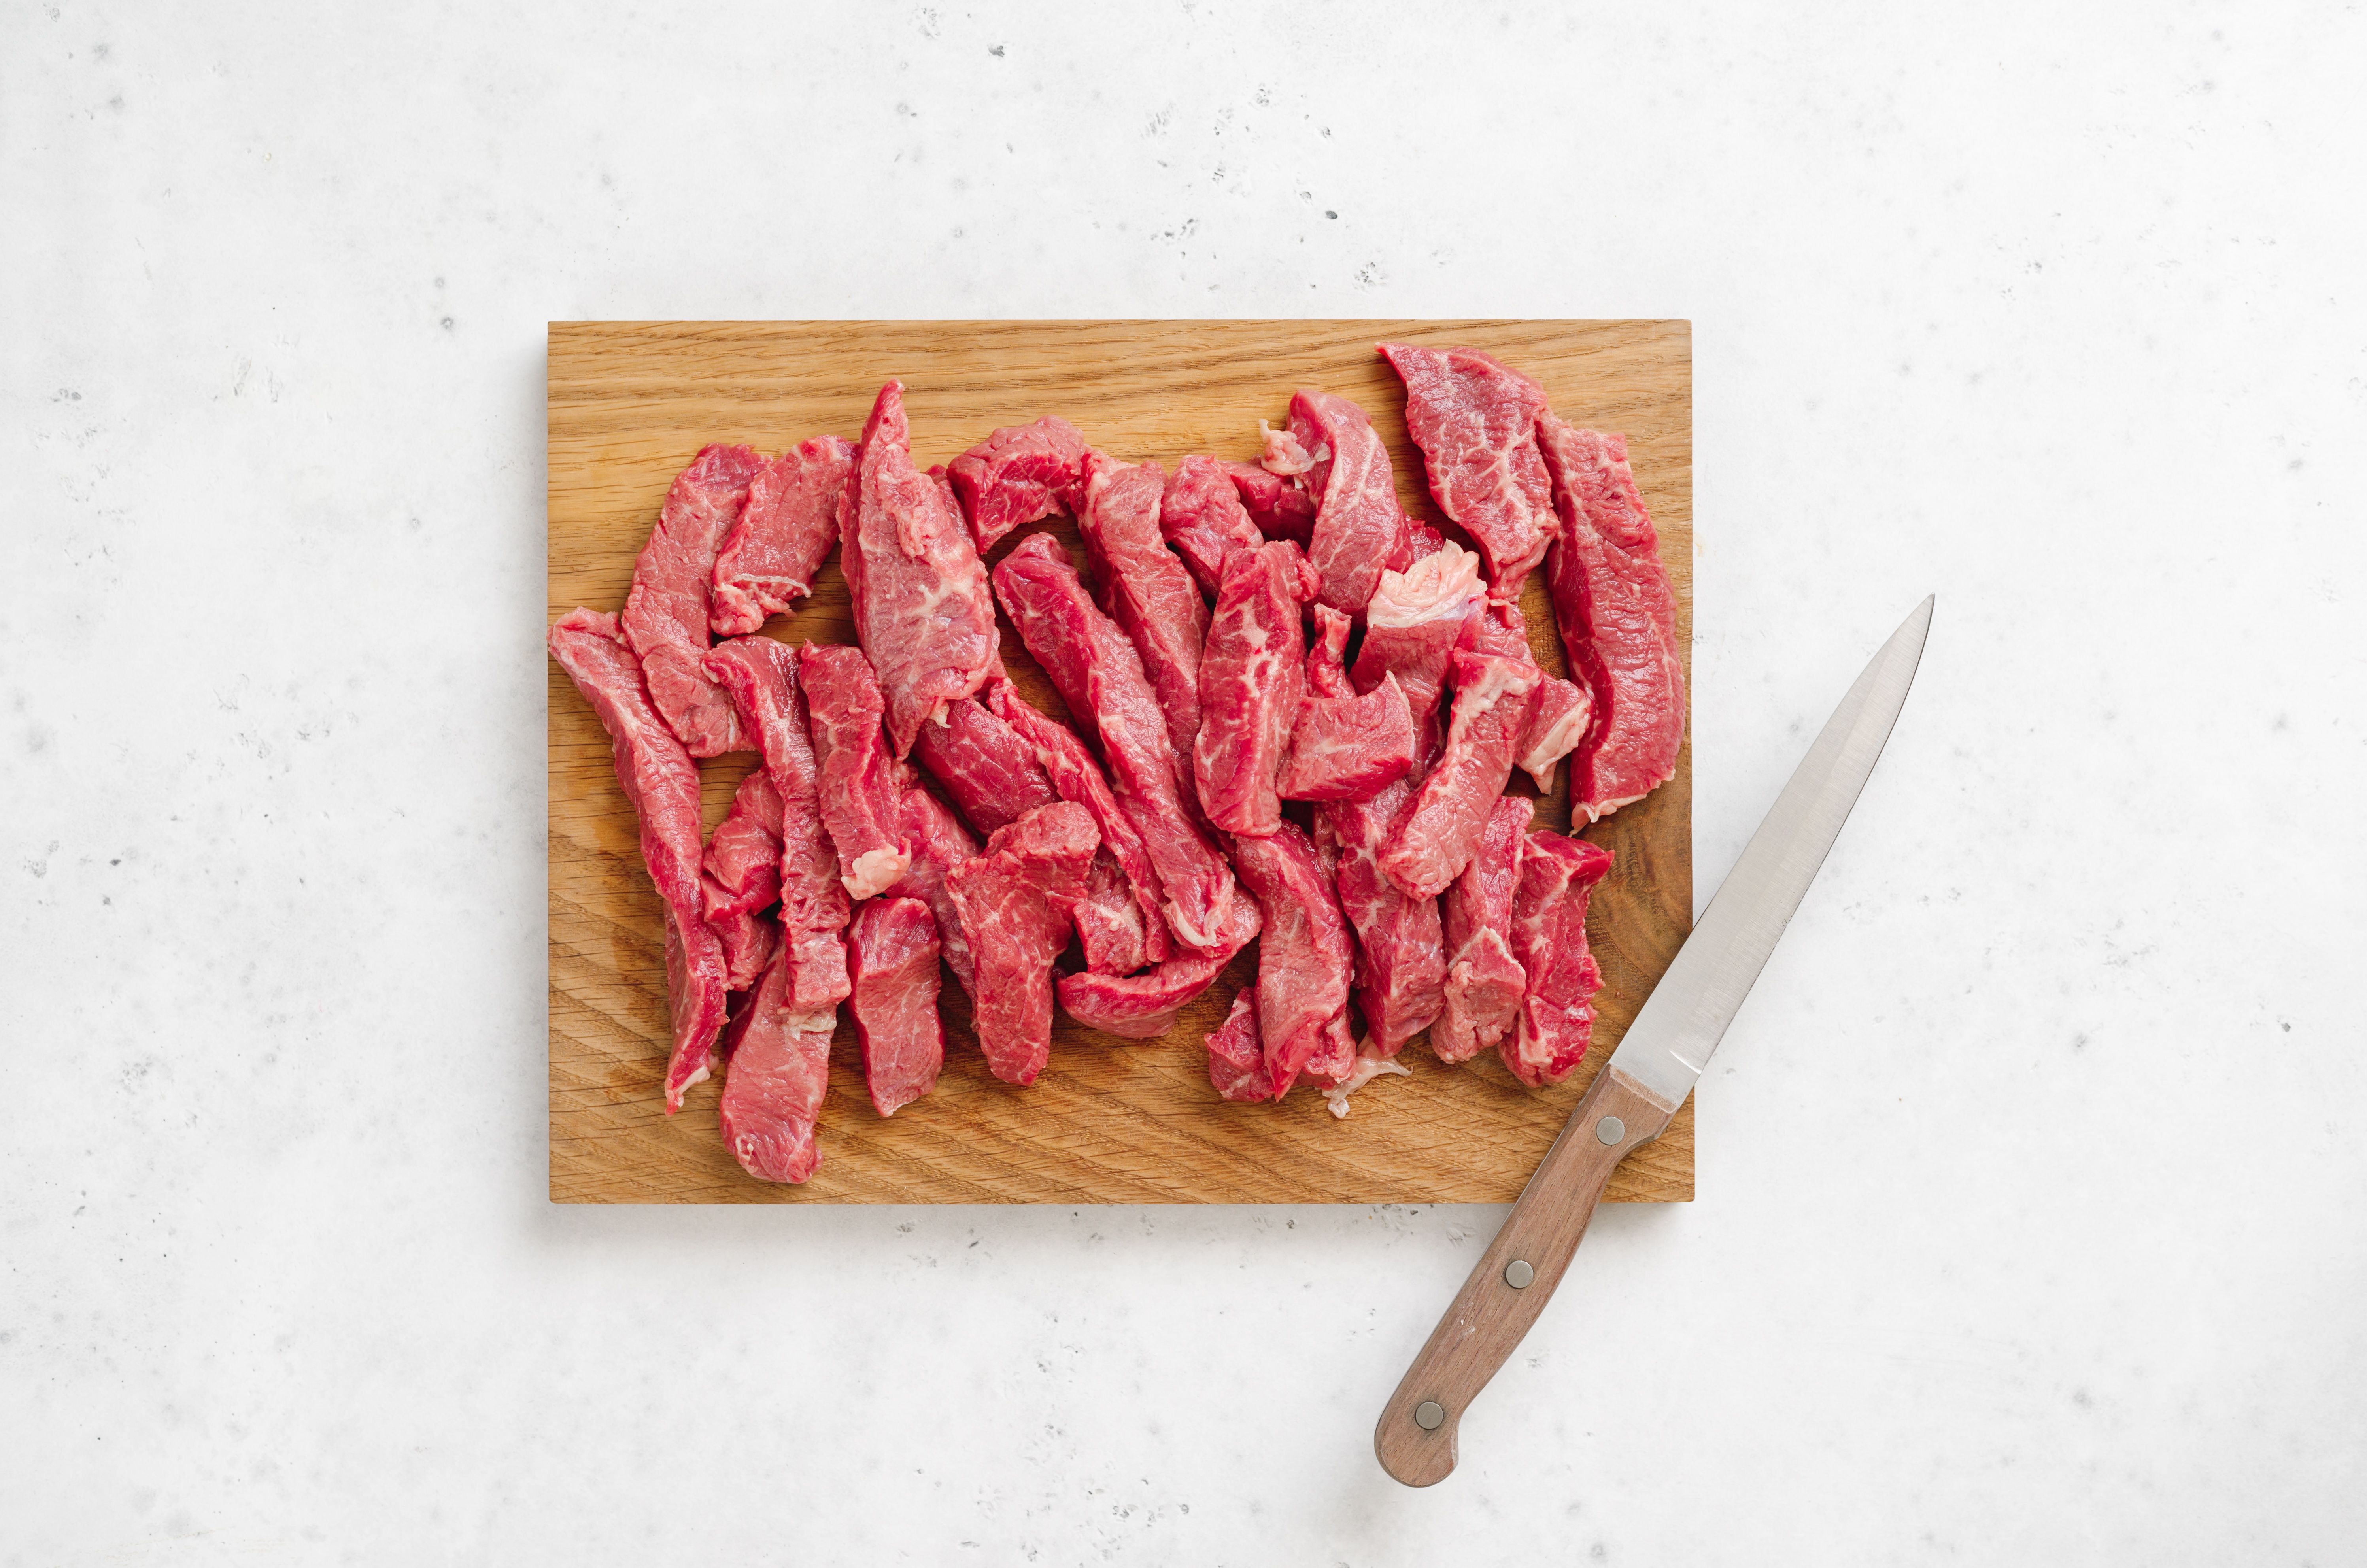 Cut the beef